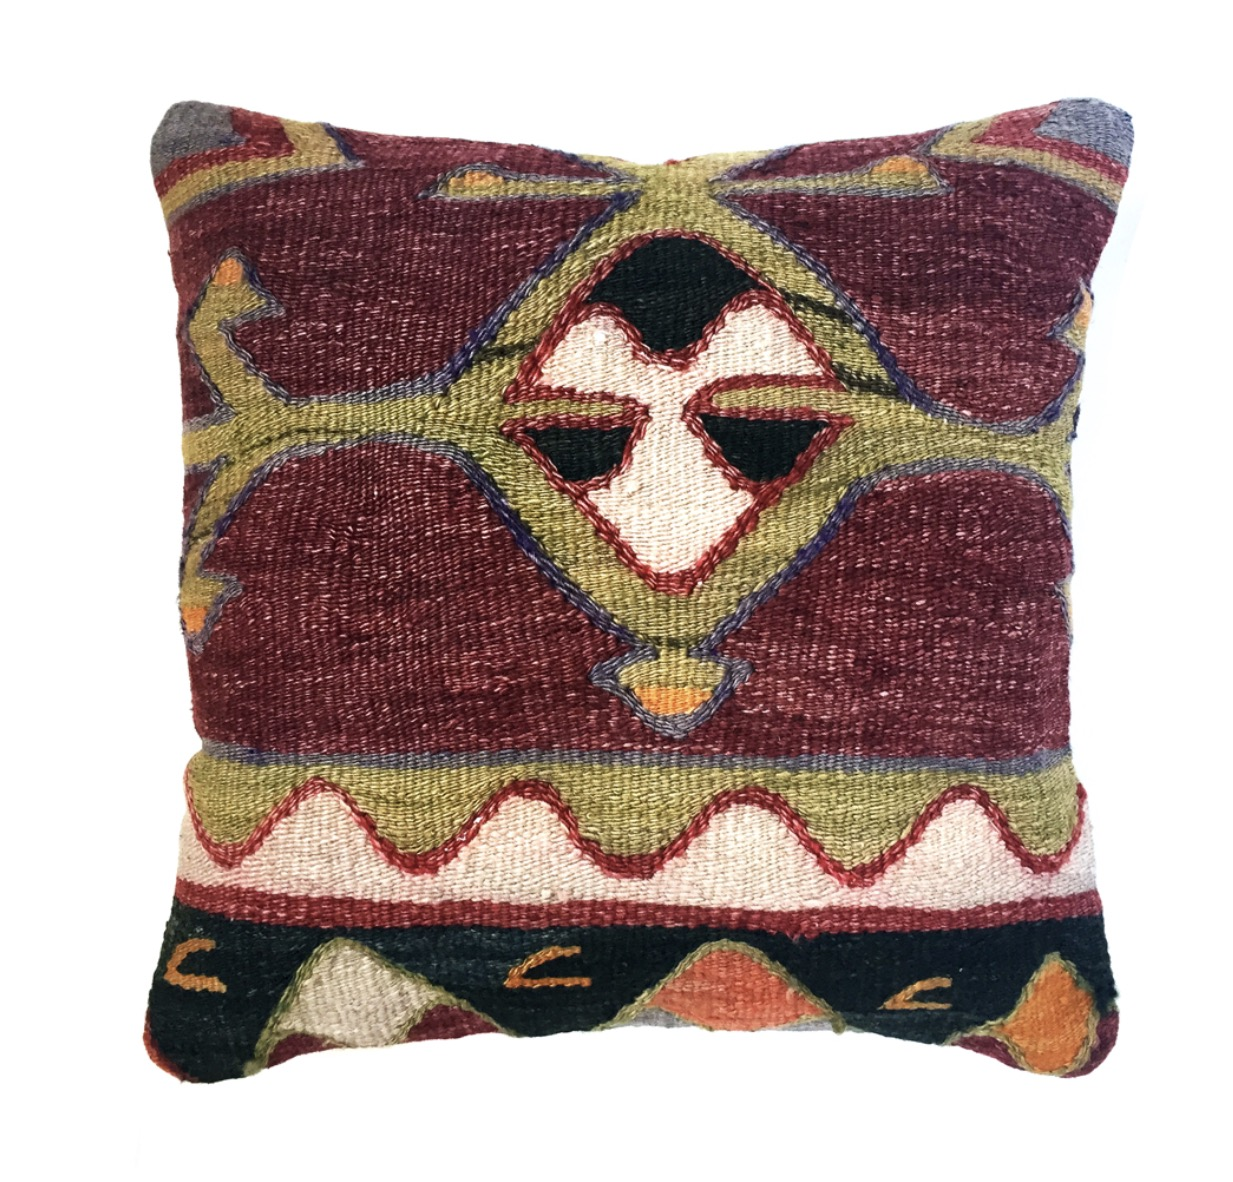 Original Kilim Cushion , Curious Egg £45